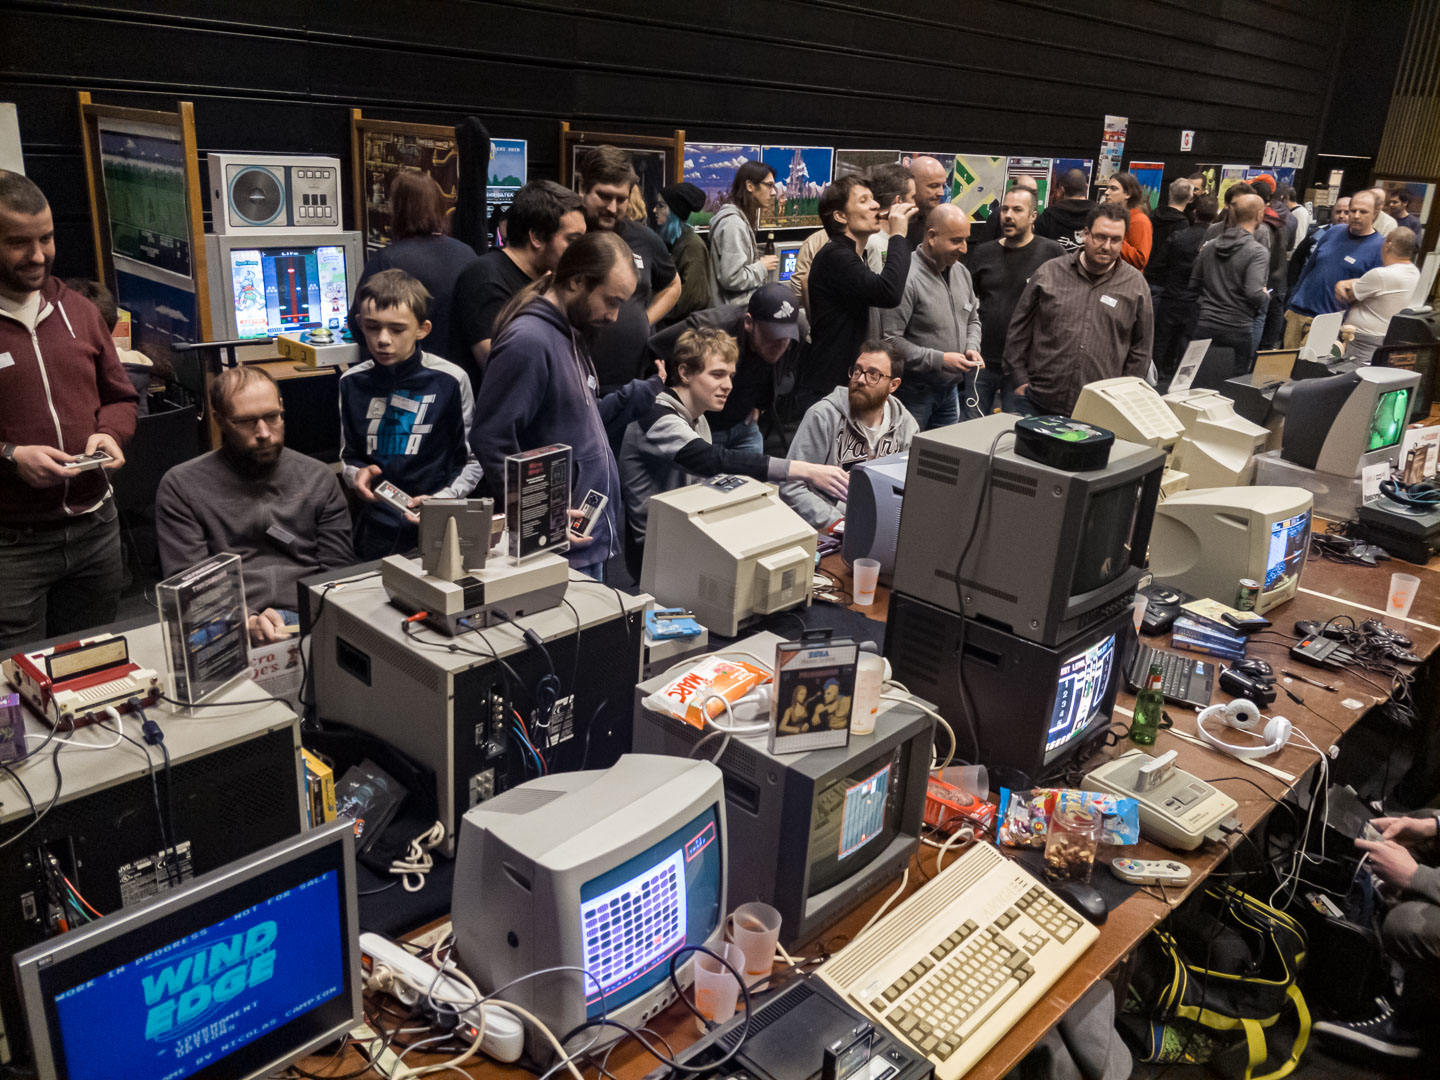 People presented their beloved machines or games